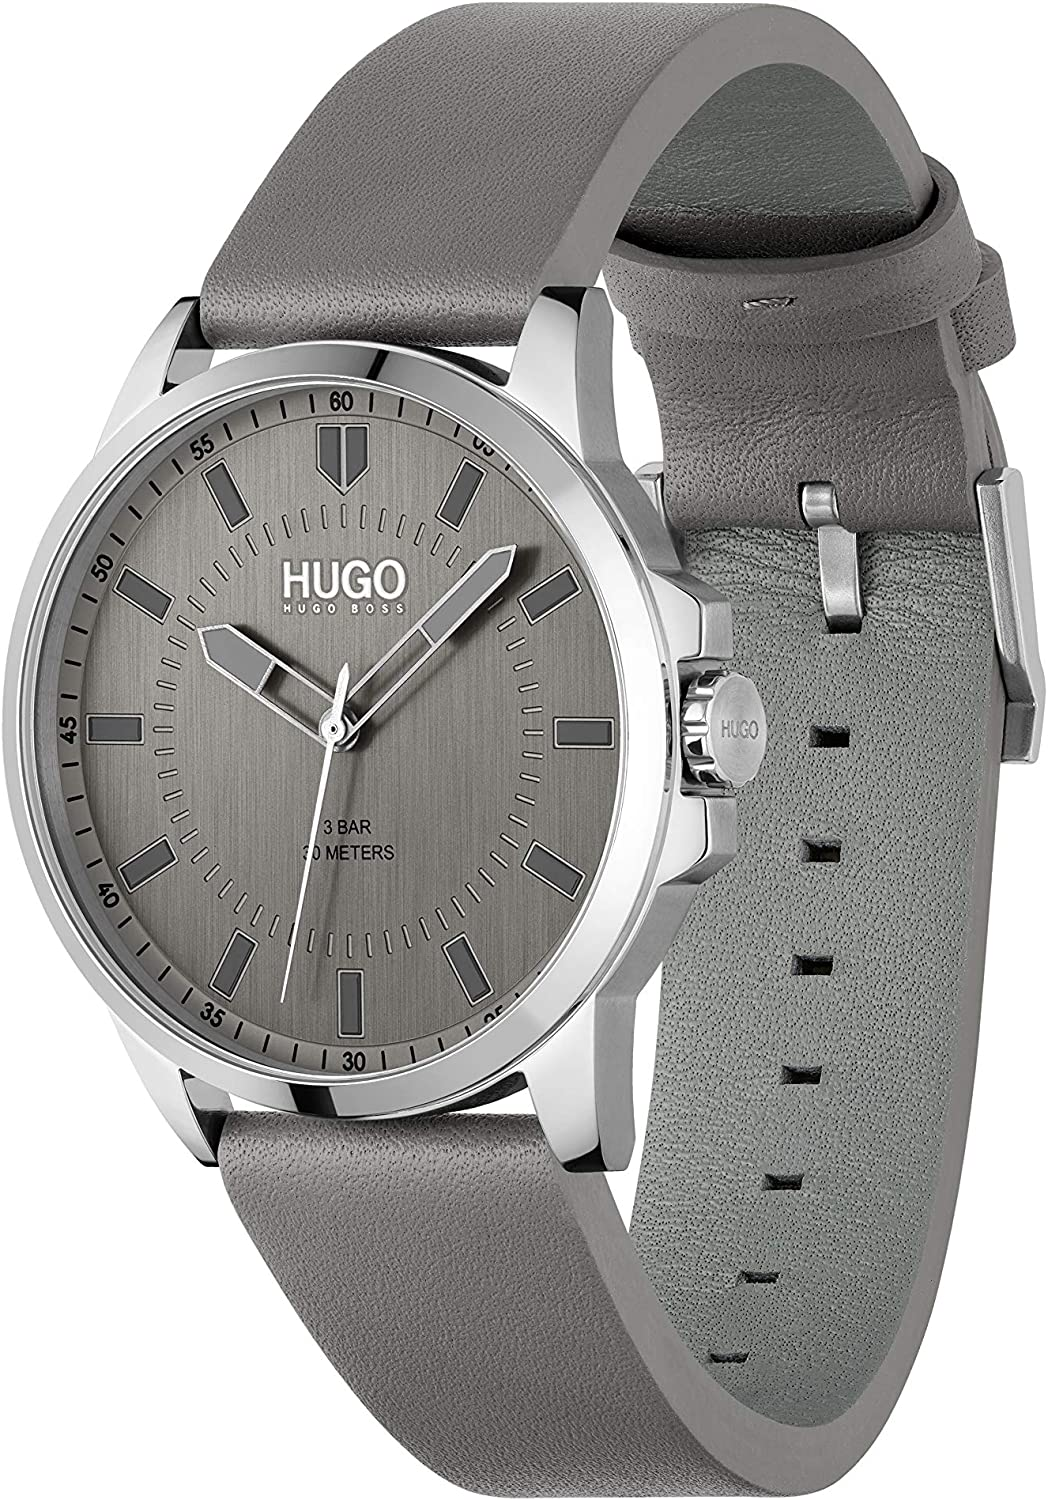 HUGO Mens Stainless Steel Quartz Watch with Leather Strap, Grey, 22 (Model: 1530185)